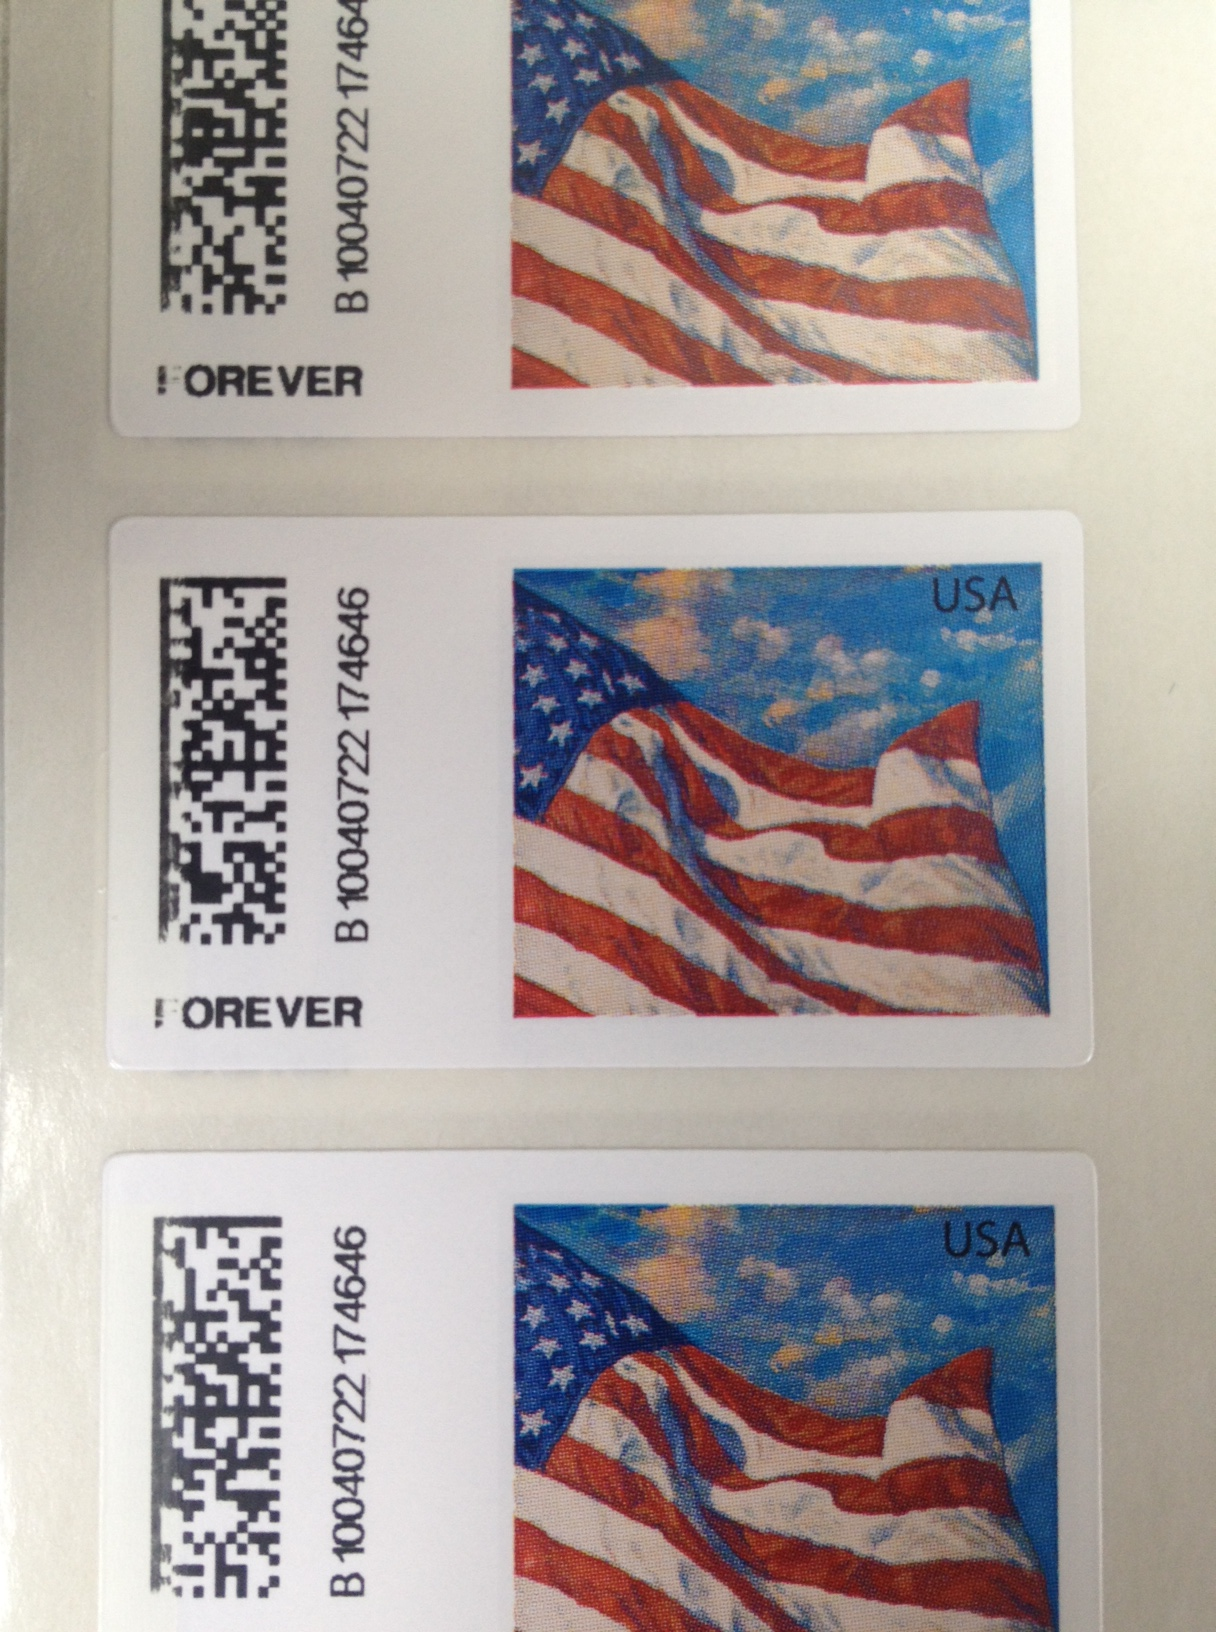 new usps forever stamps